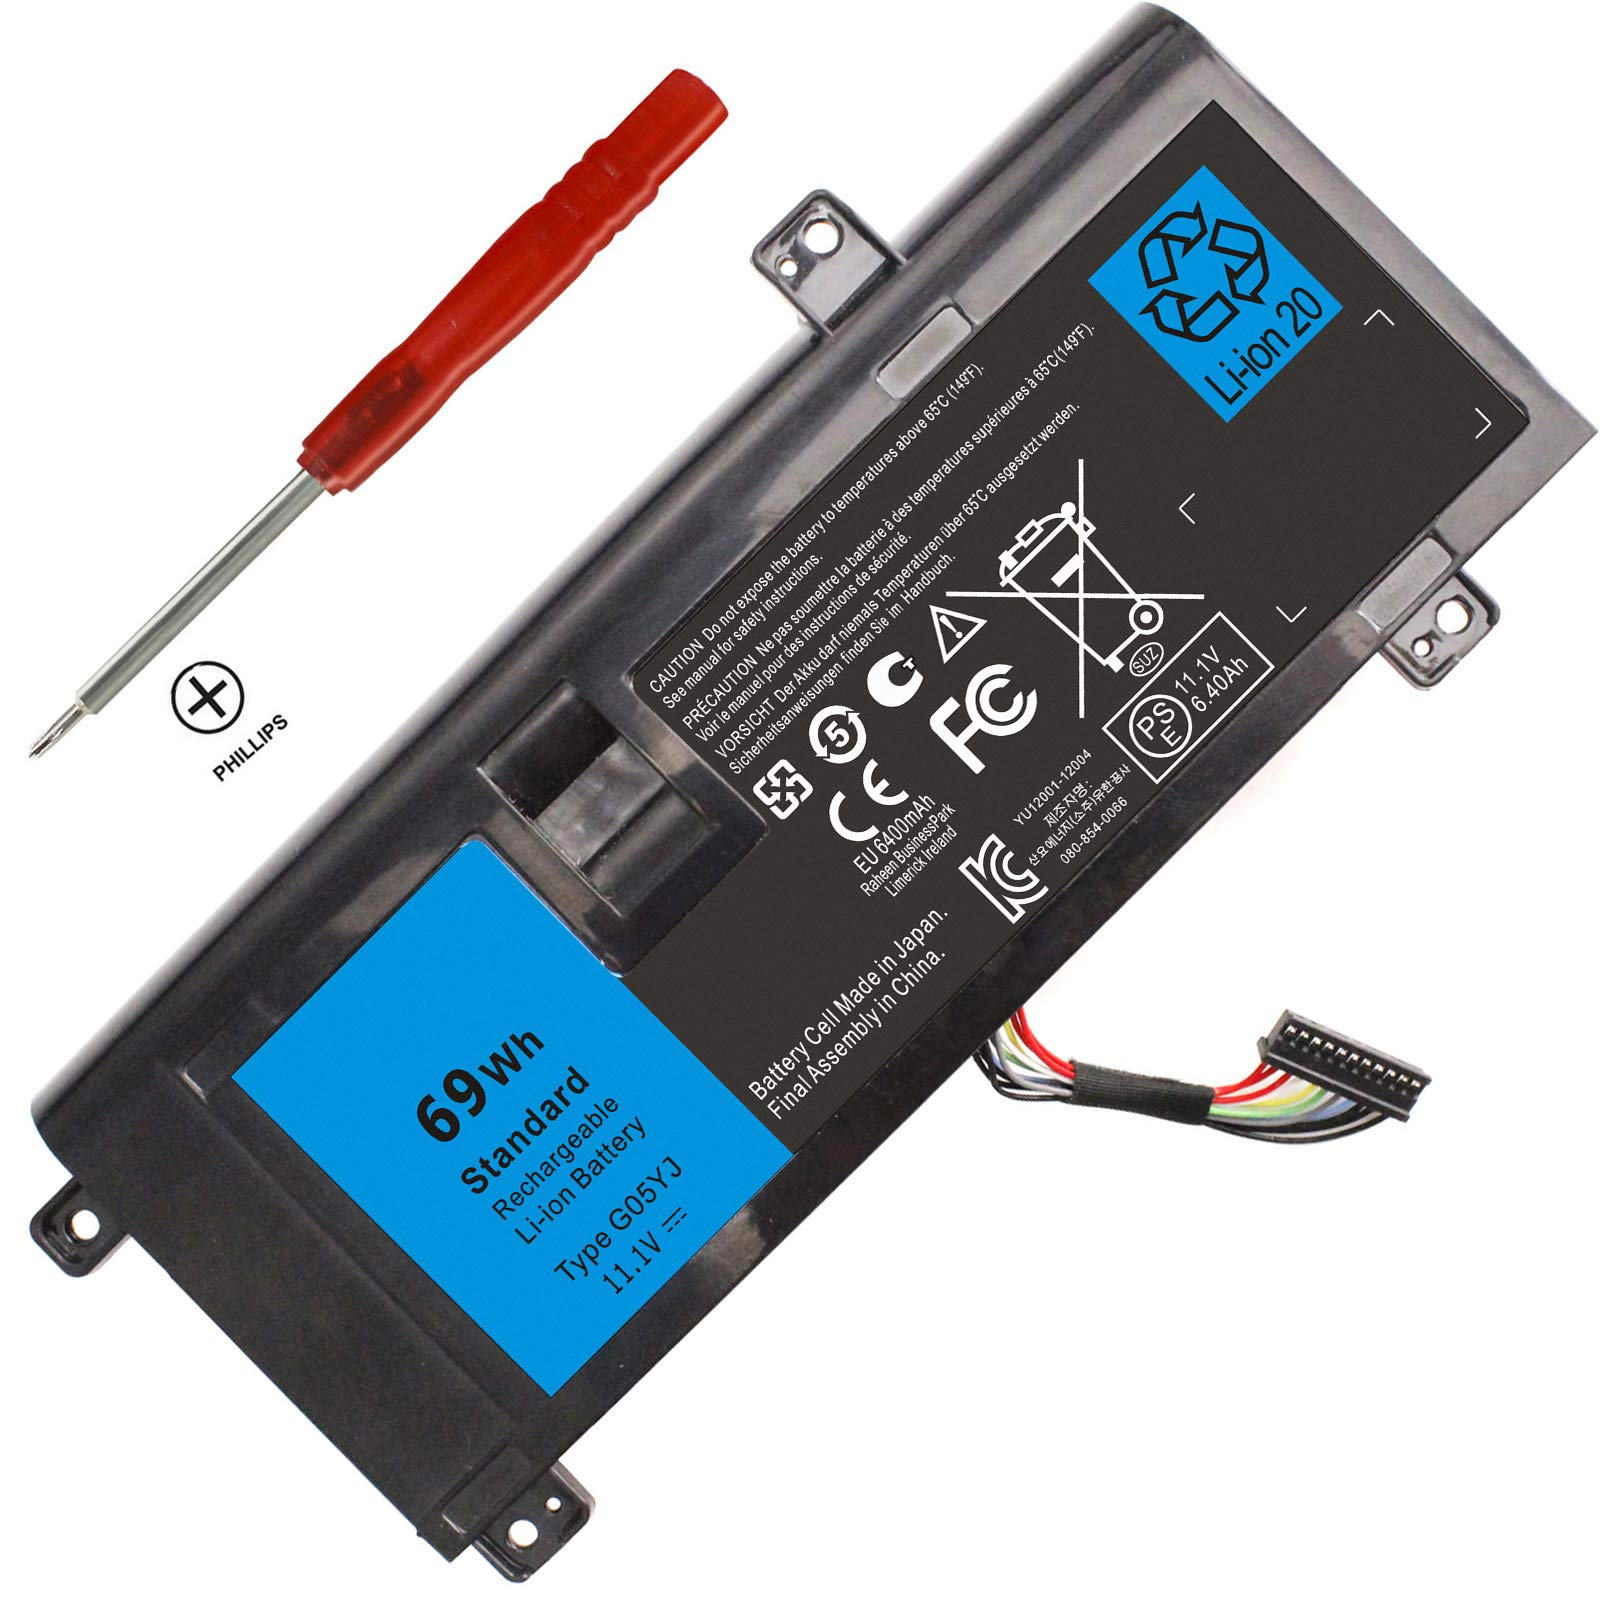 Bateria G05YJ para Dell Alienware 14 A14 M14X R3 R4 14D-1528 ALW14D Y3PN0 8X70T 0G05YJ P39G 11.1V 69Wh 12 !